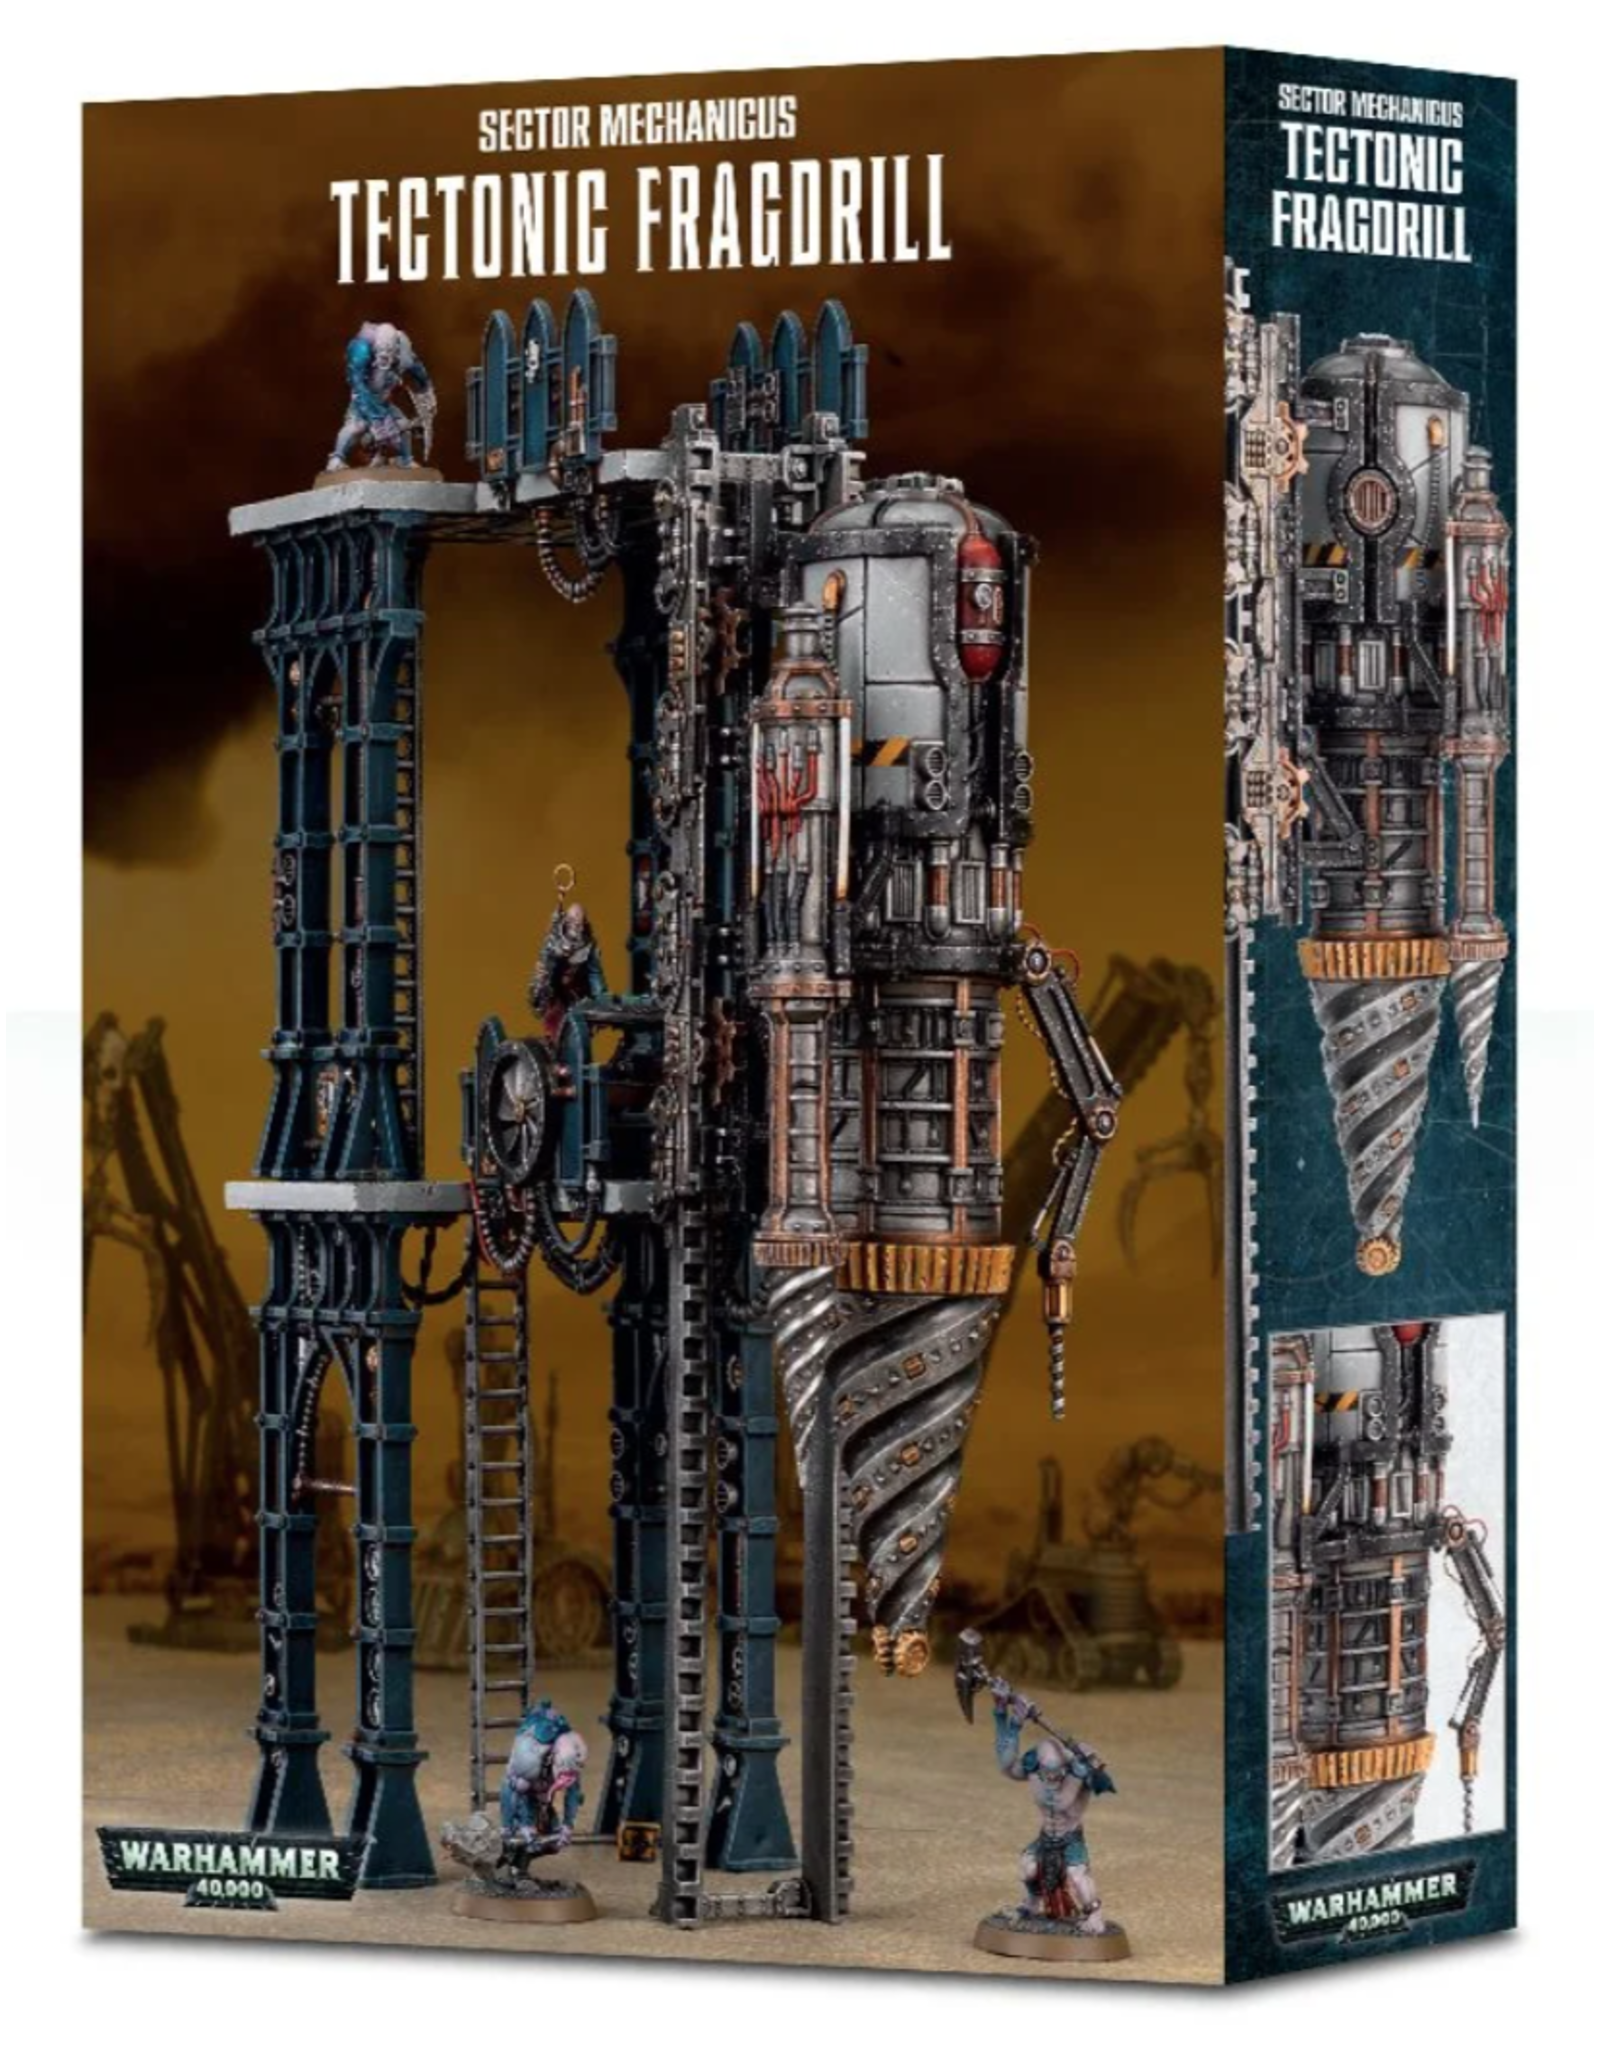 Warhammer 40K Sector Mechanicus Tectonic Fragdrill